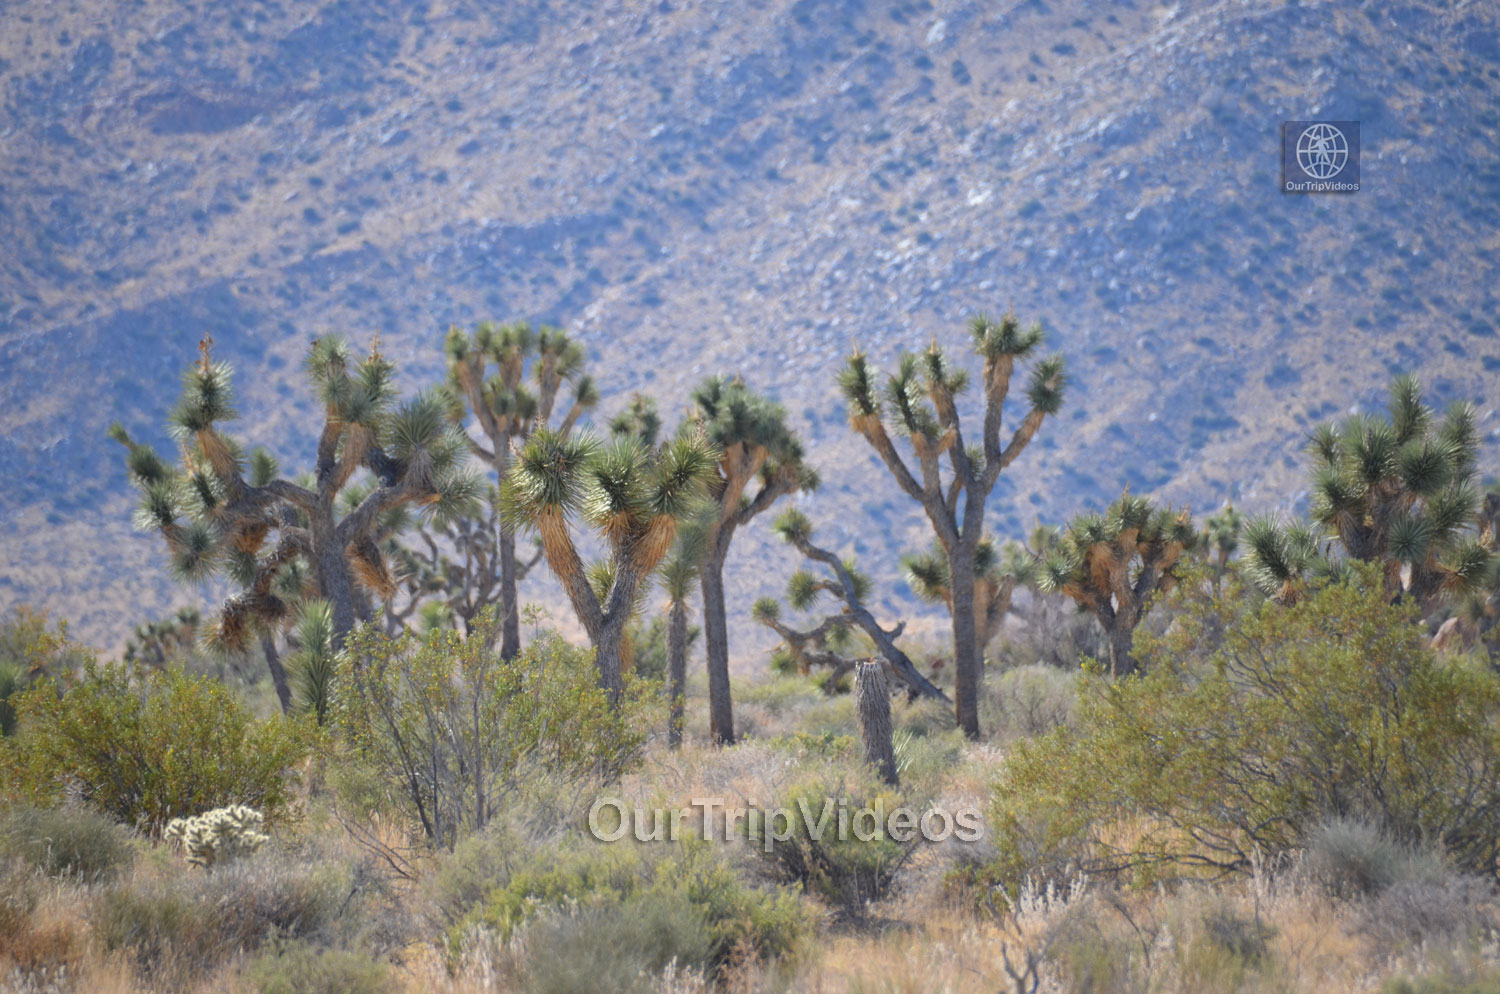 Joshua Tree National Park, Joshua Tree, CA, USA - Picture 16 of 25